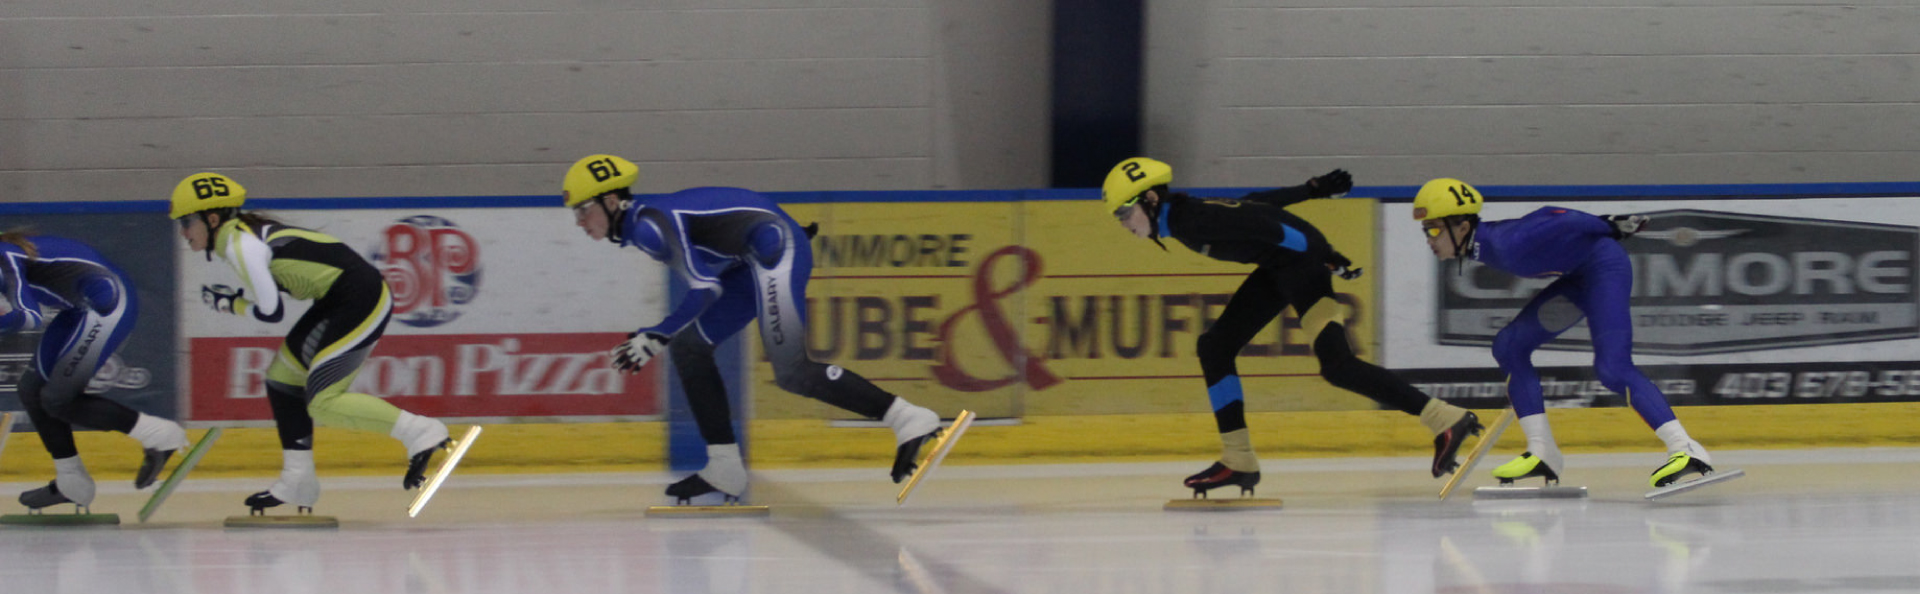 Banff Canmore Speed Skating Club